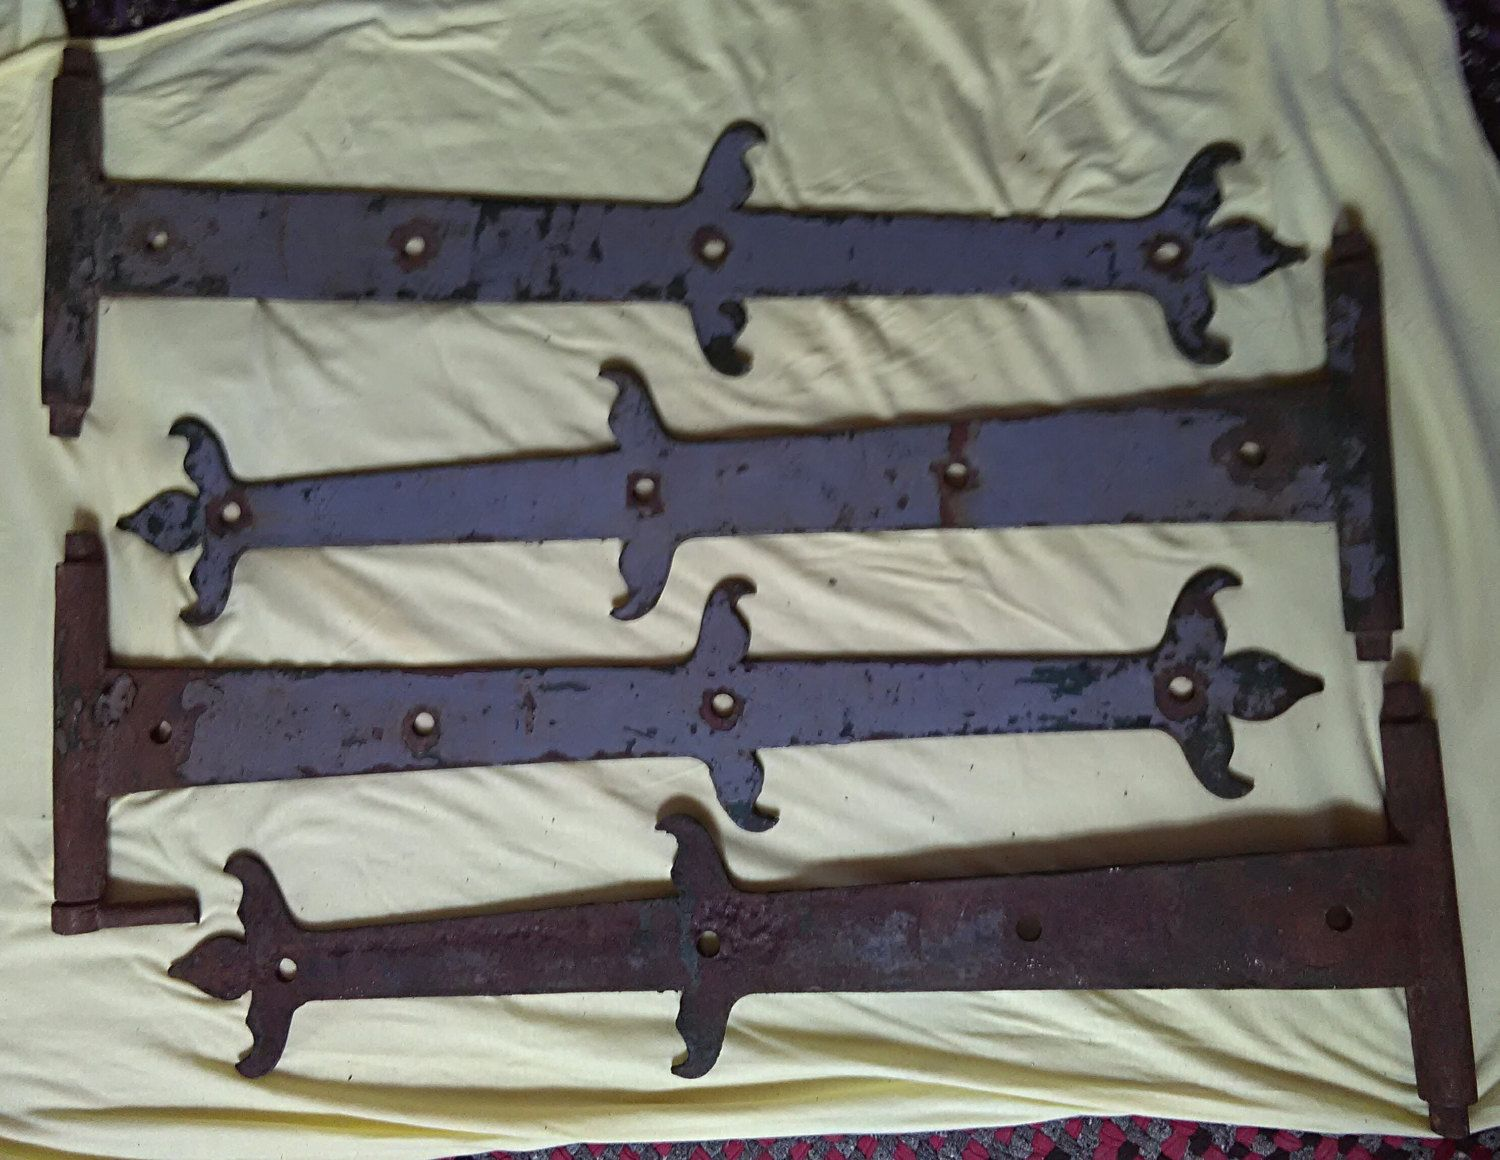 Barn Door Hinges, Vintage Door Hinges, Antique Hinges, Gate Hinges, Strap  Hinges - Barn Door Hinges, Vintage Door Hinges, Antique Hinges, Gate Hinges